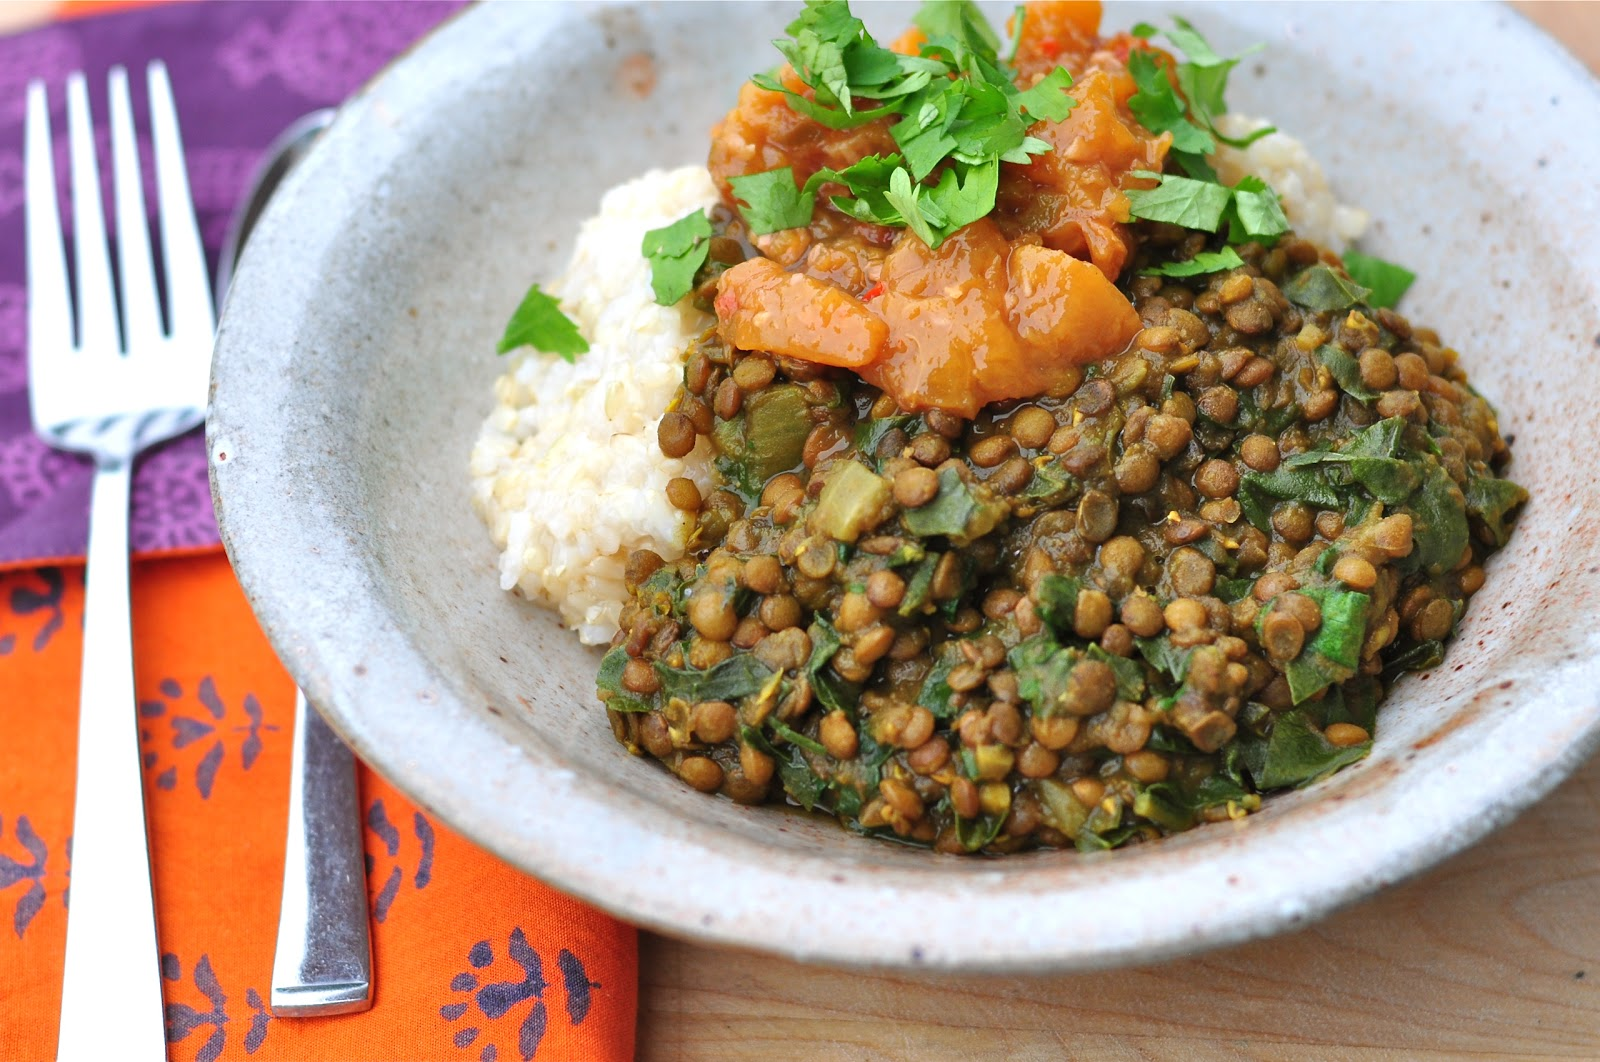 Recipes of dishes from lentils